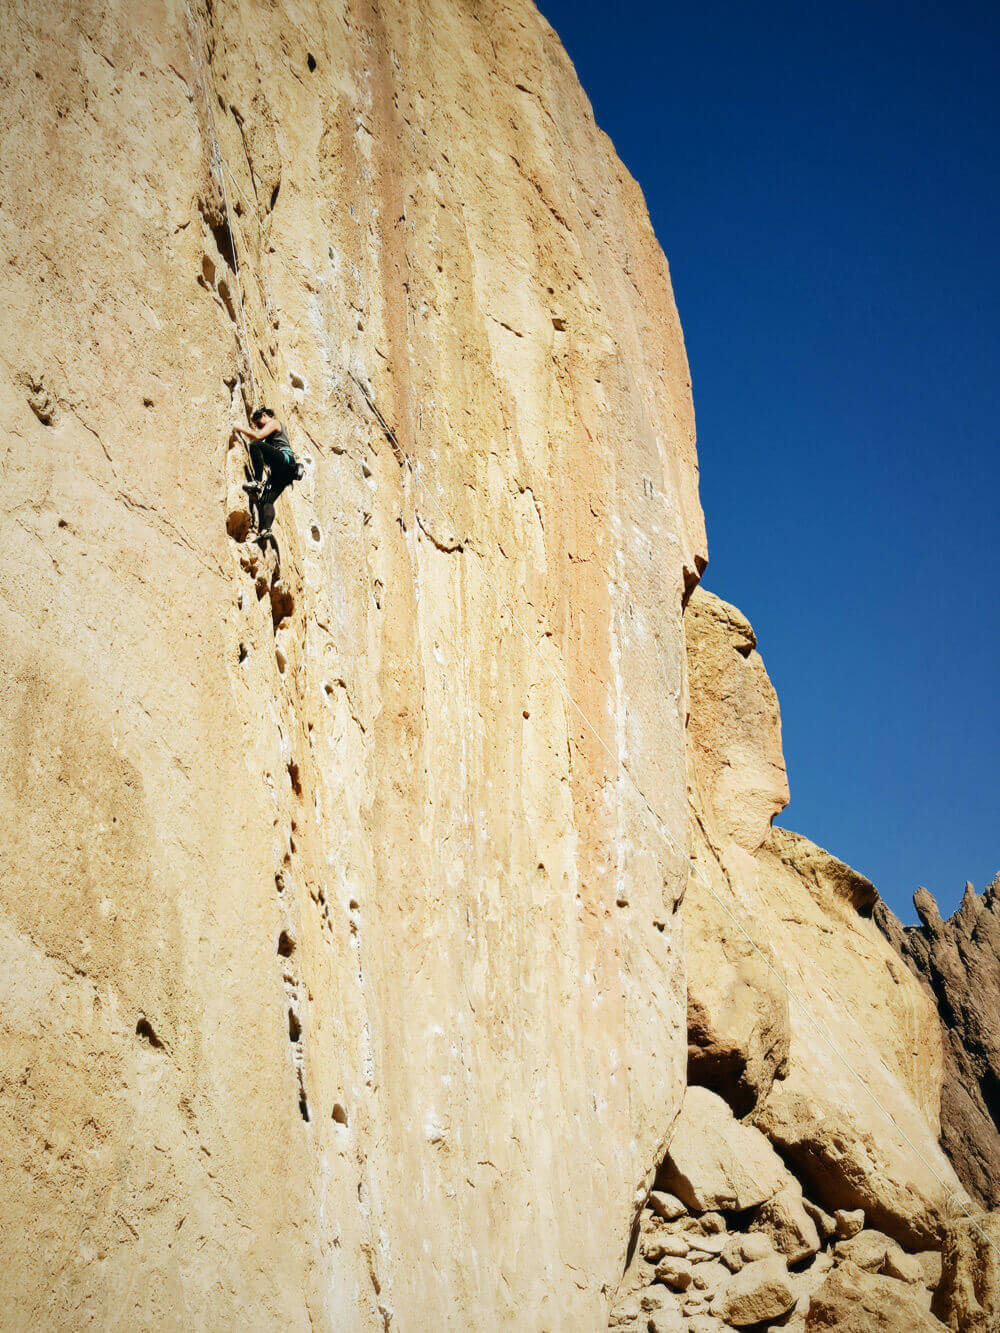 Moving on up... literally! (Climbing in Smith Rock, Oregon)